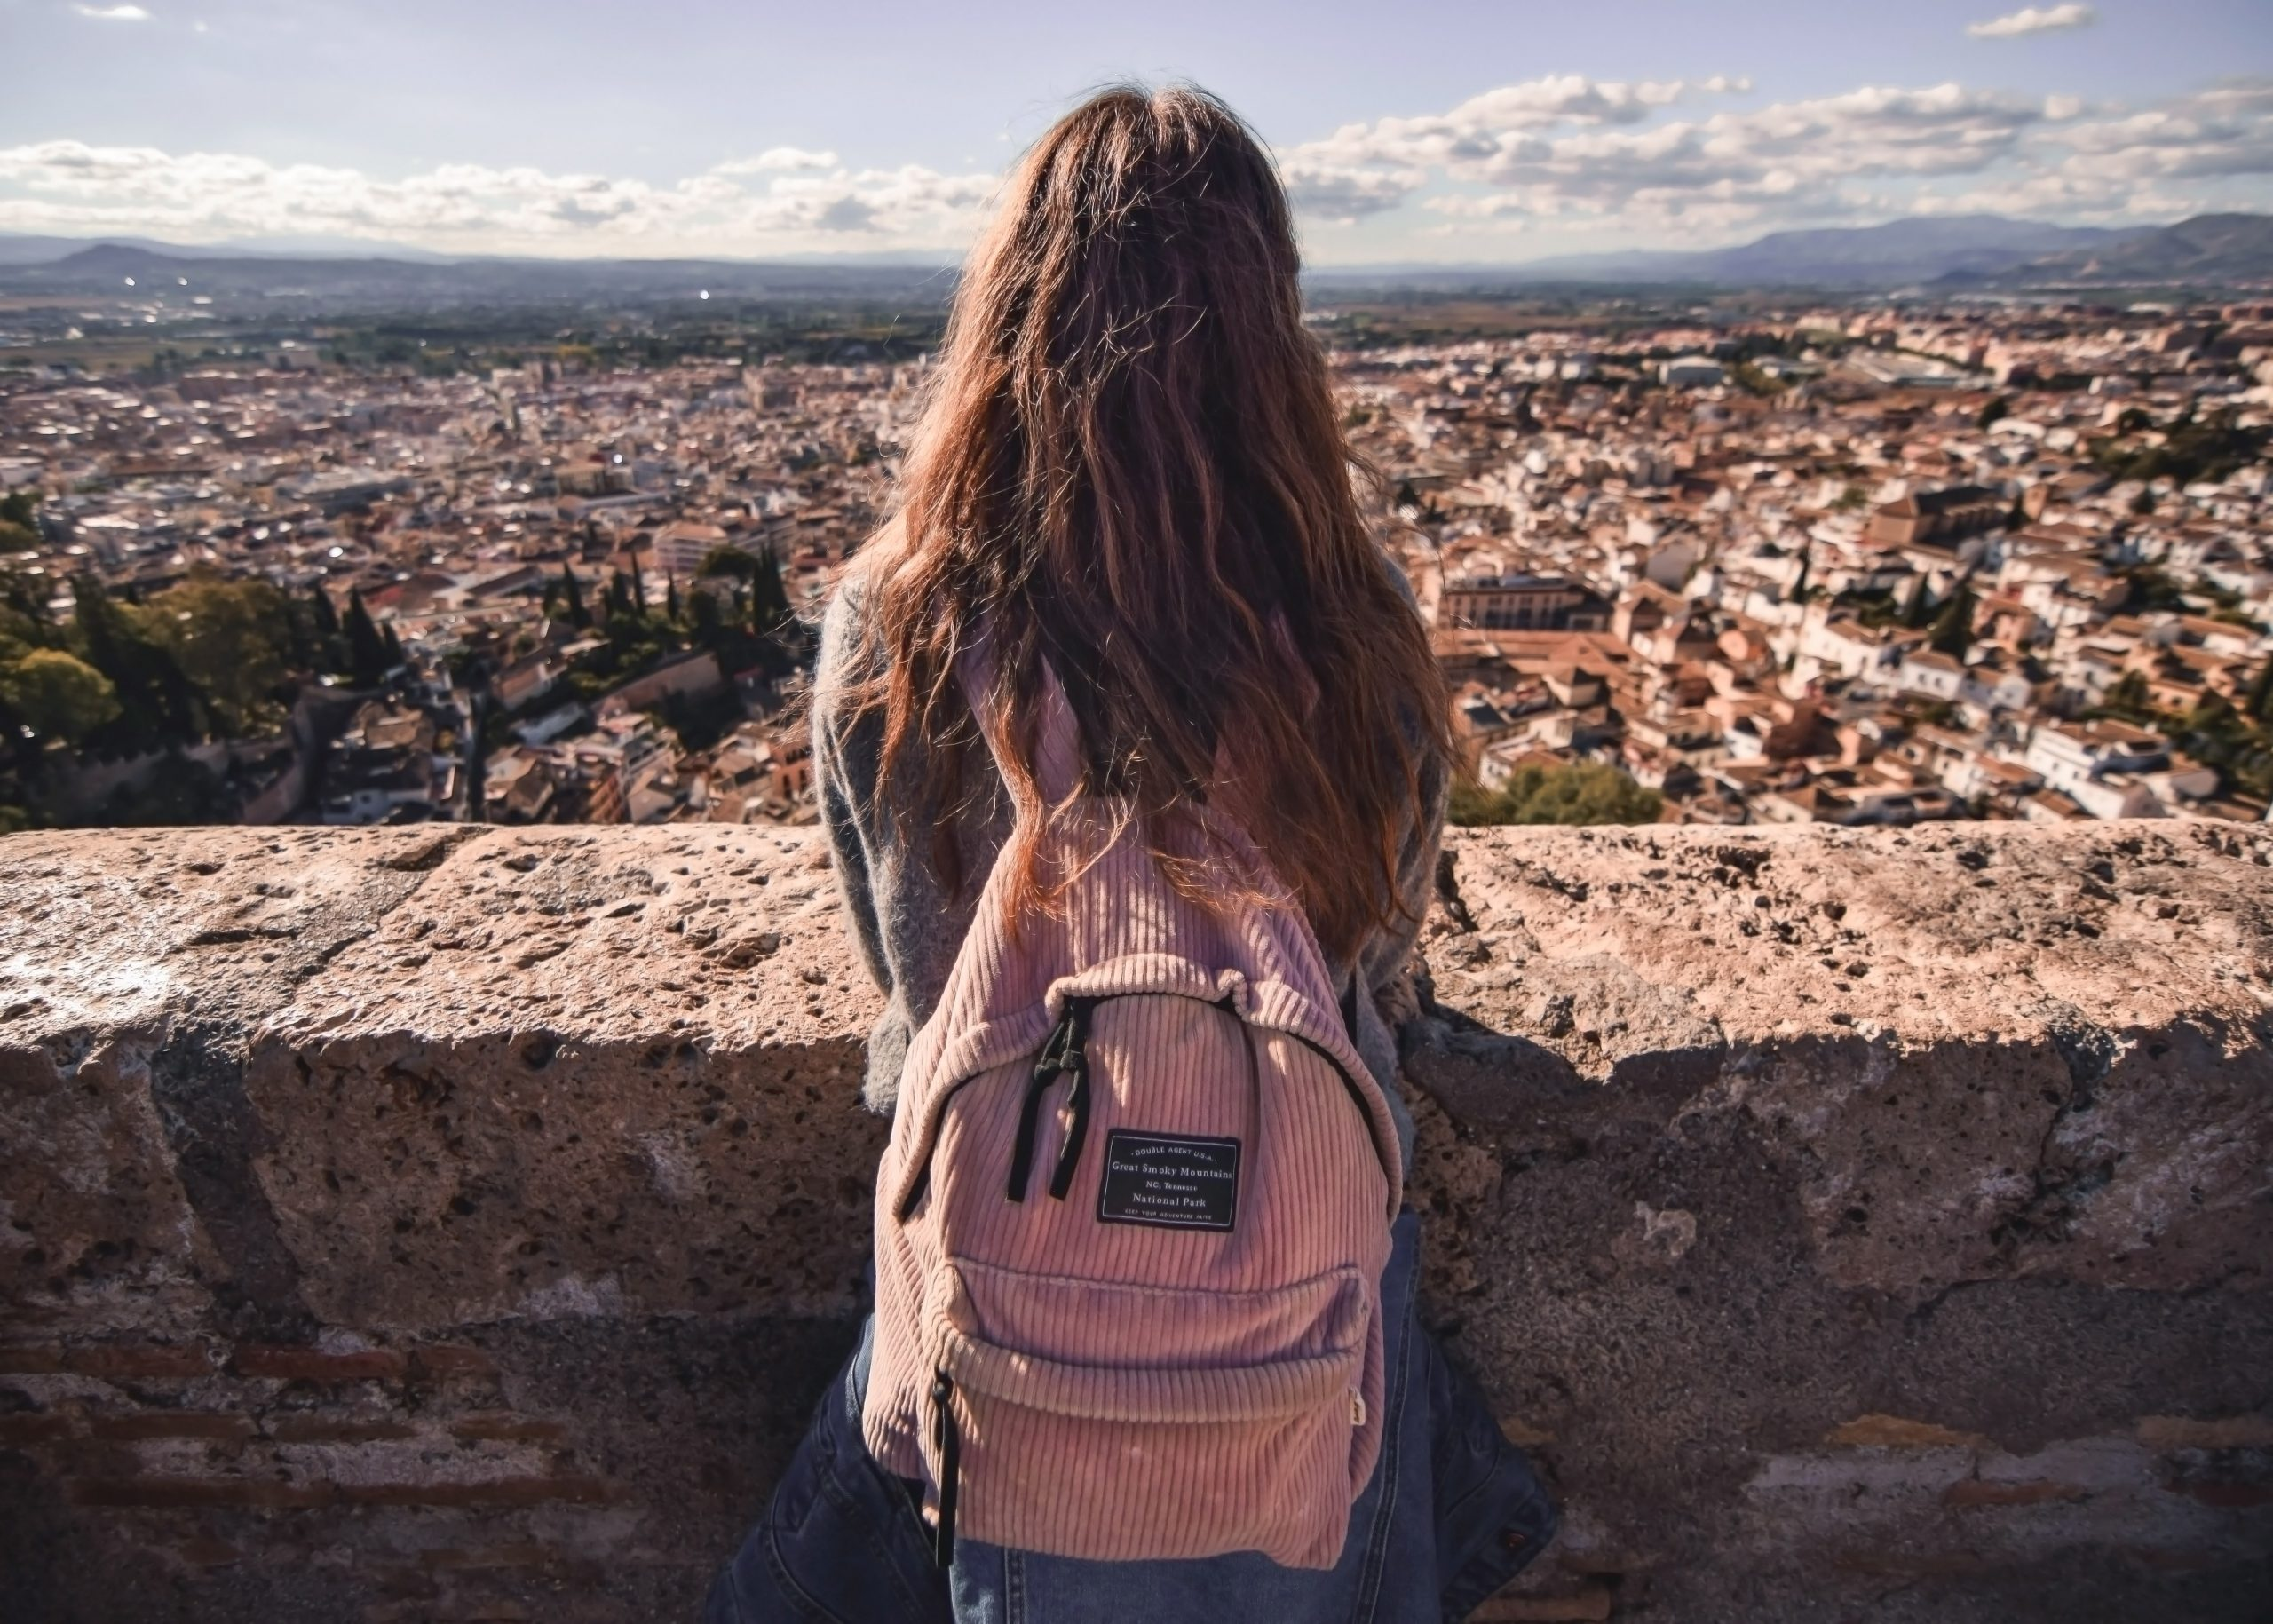 Solo female travel girl with pink backpack looking out at a crowded city.